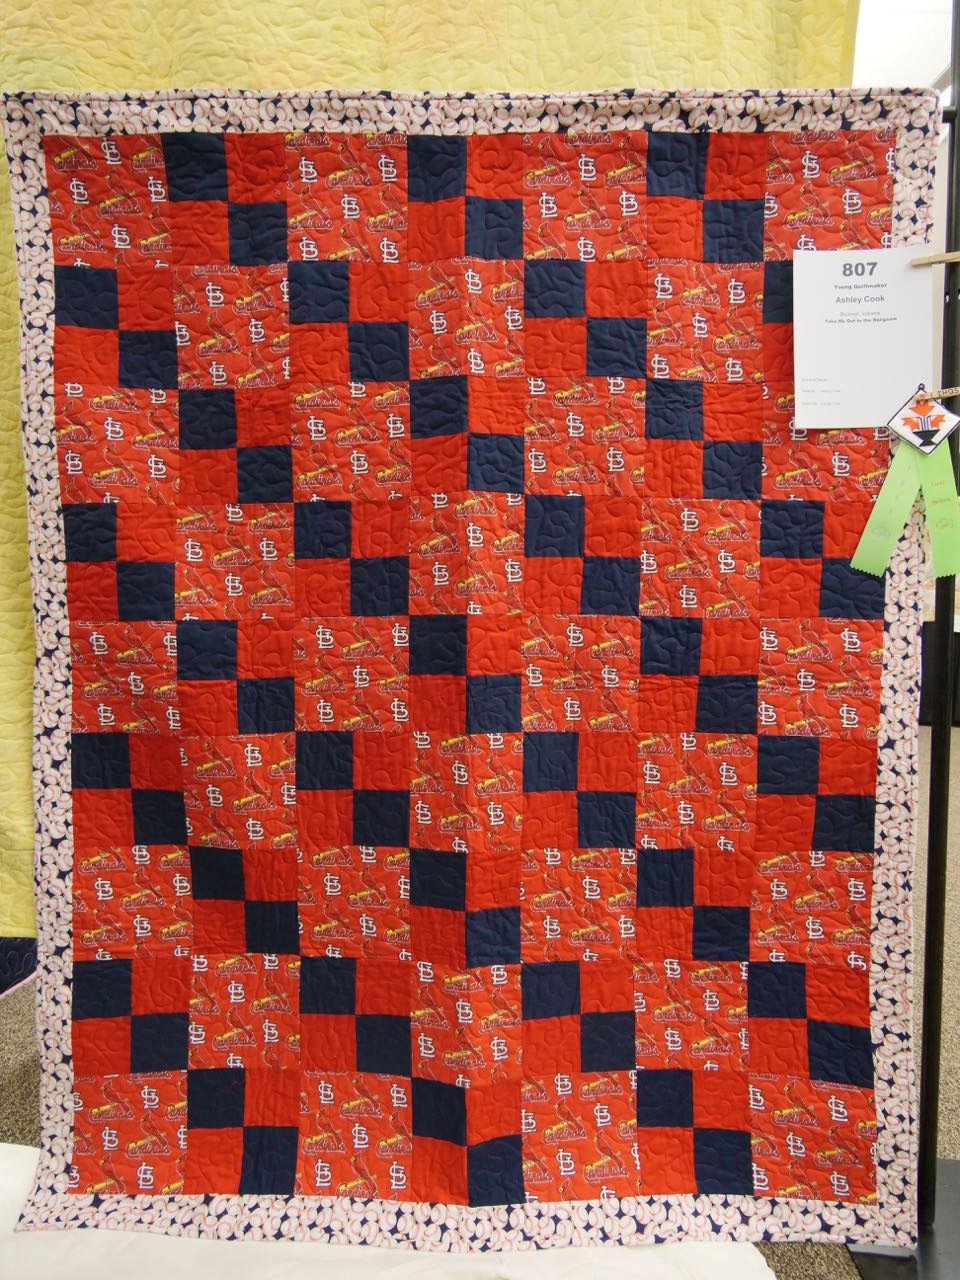 Take Me Out to the Ballgame - Young Quiltmaker